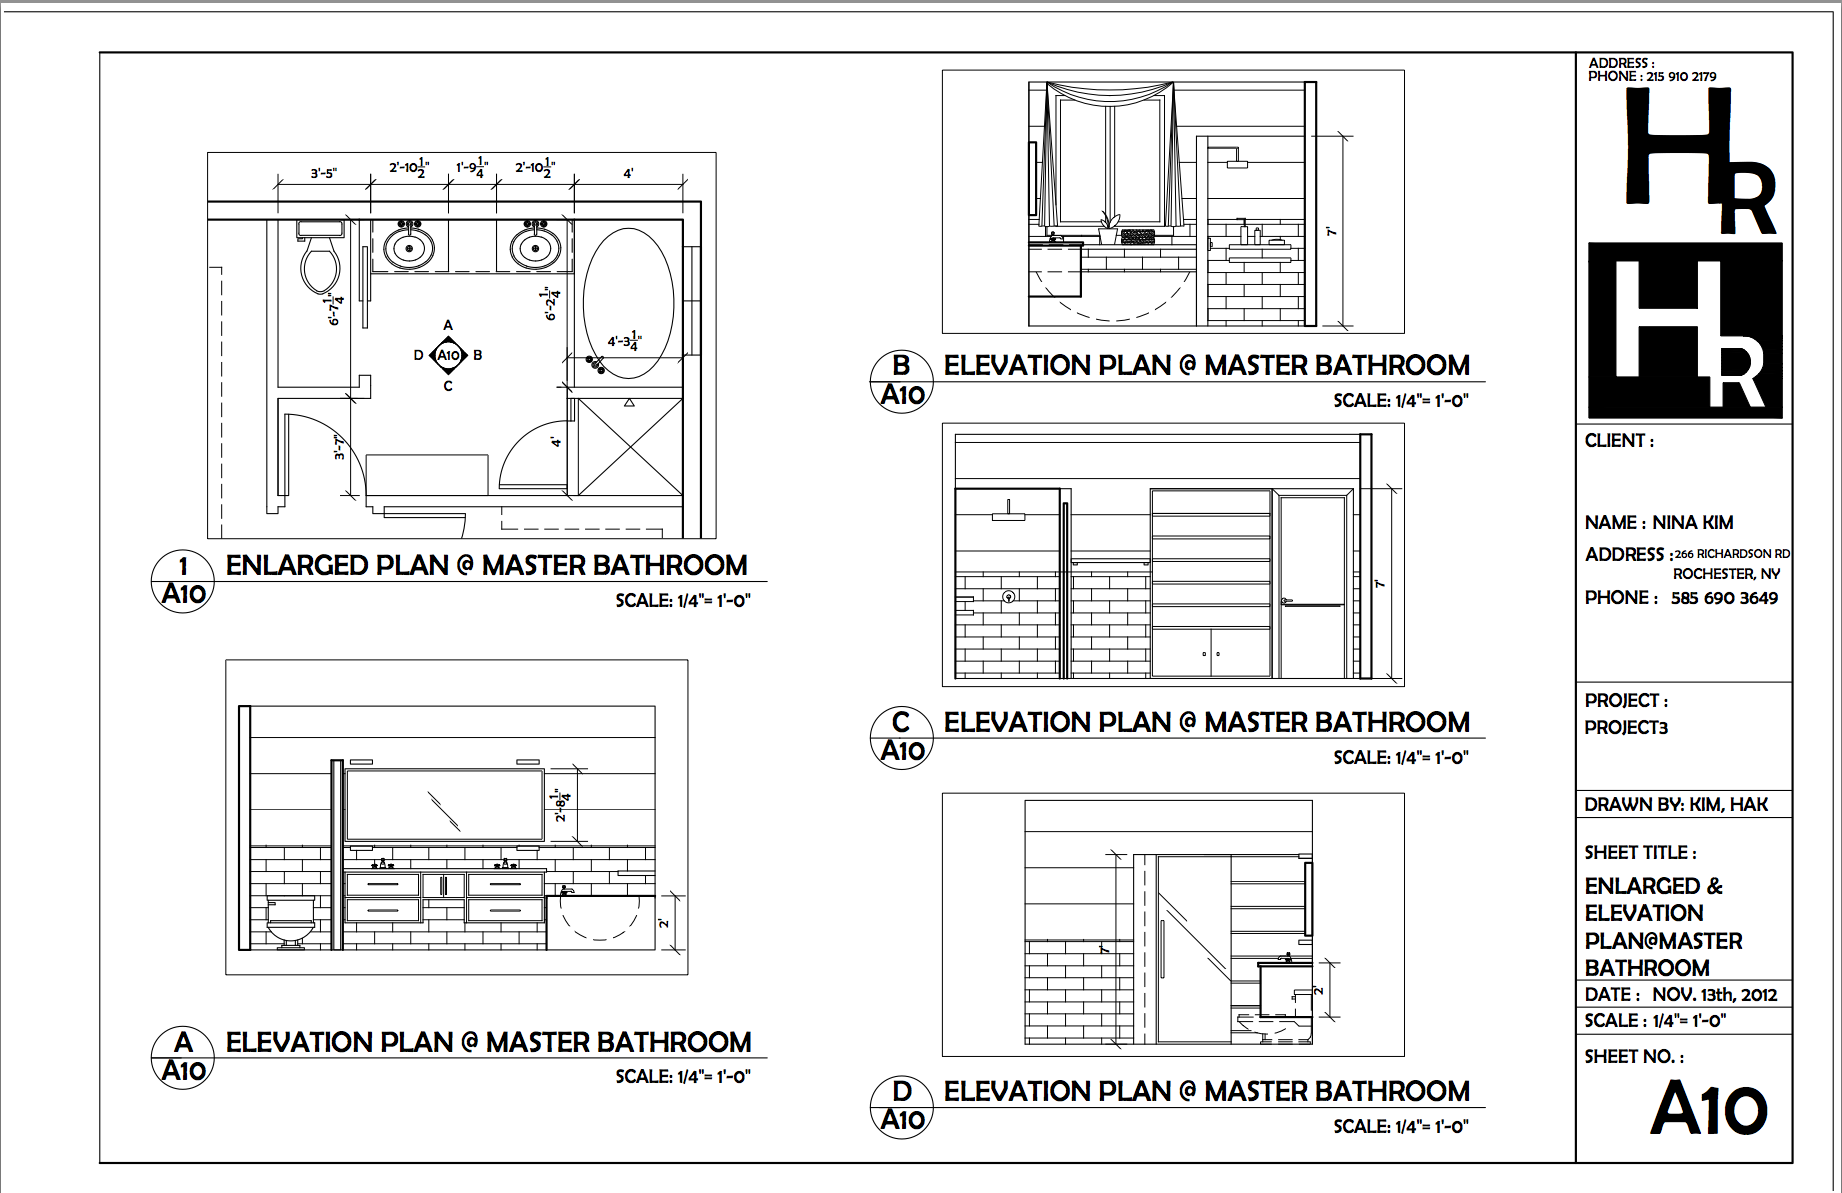 Elevation Plan In Autocad : Bathrm enlarged and elevation plan portfolio autocad